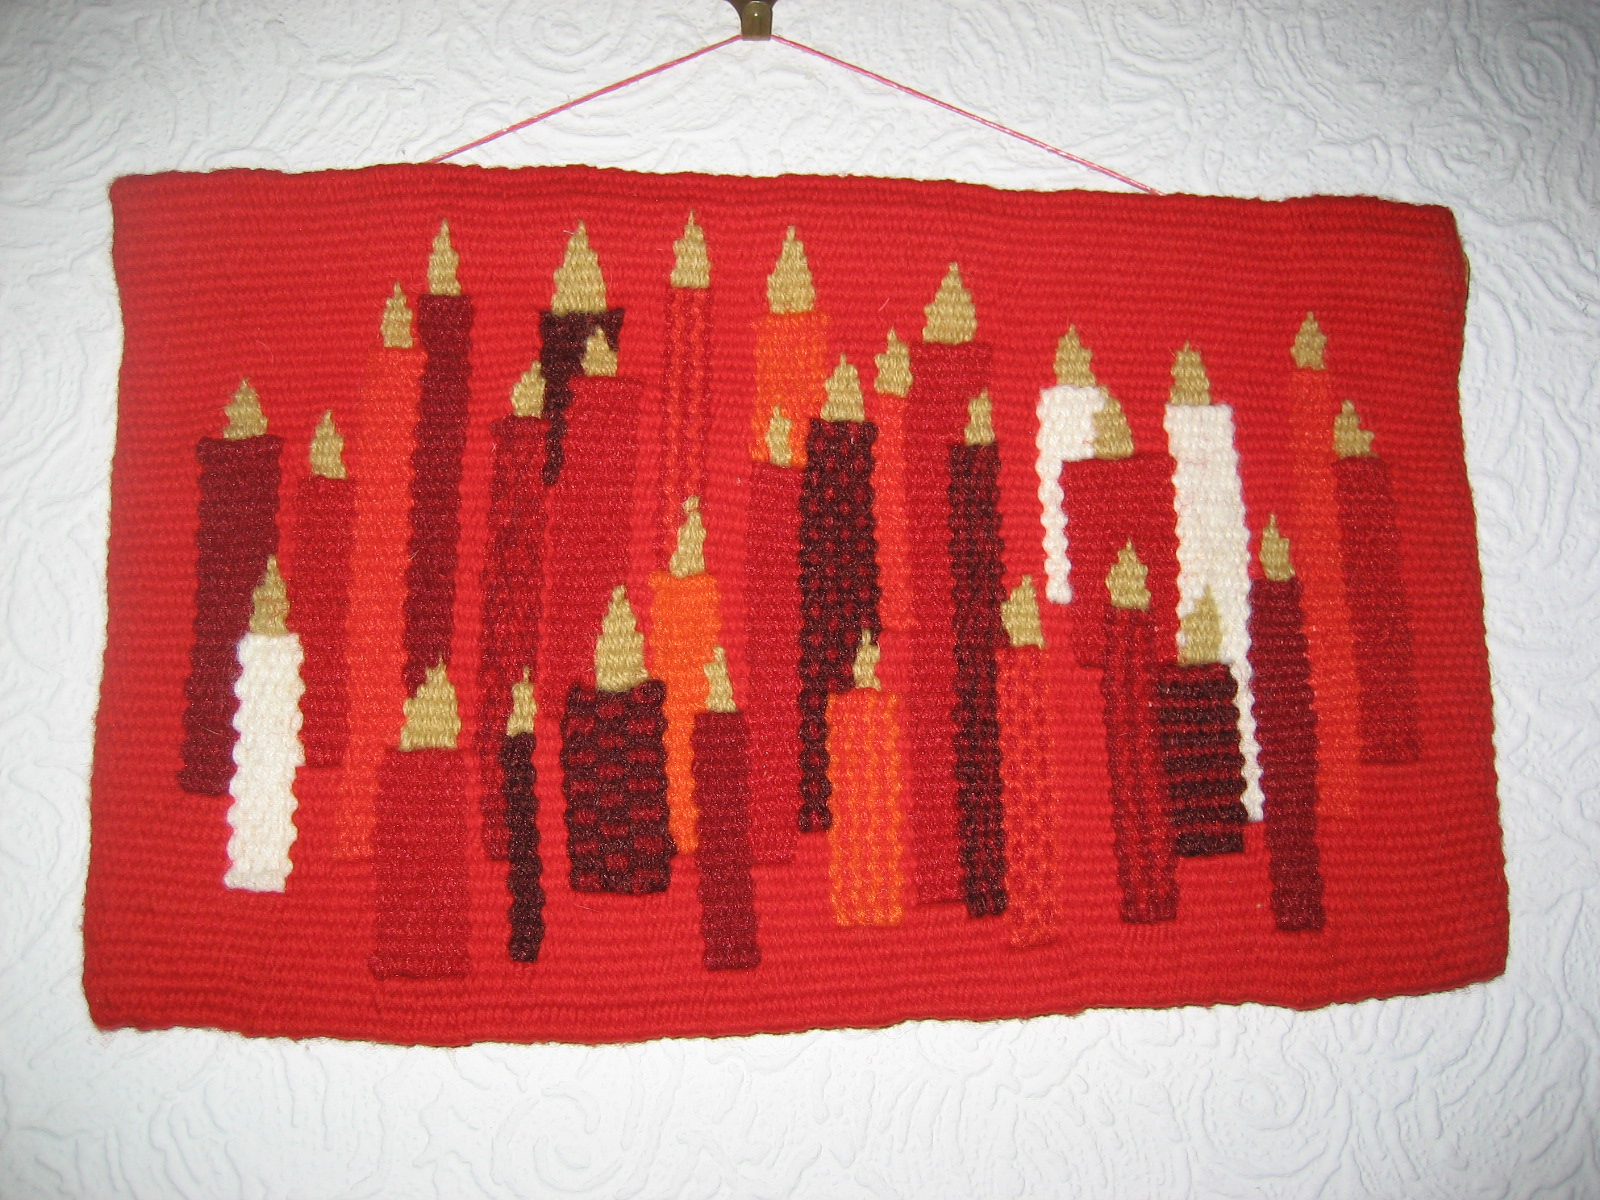 Elspeth's tapestry weaving - candles